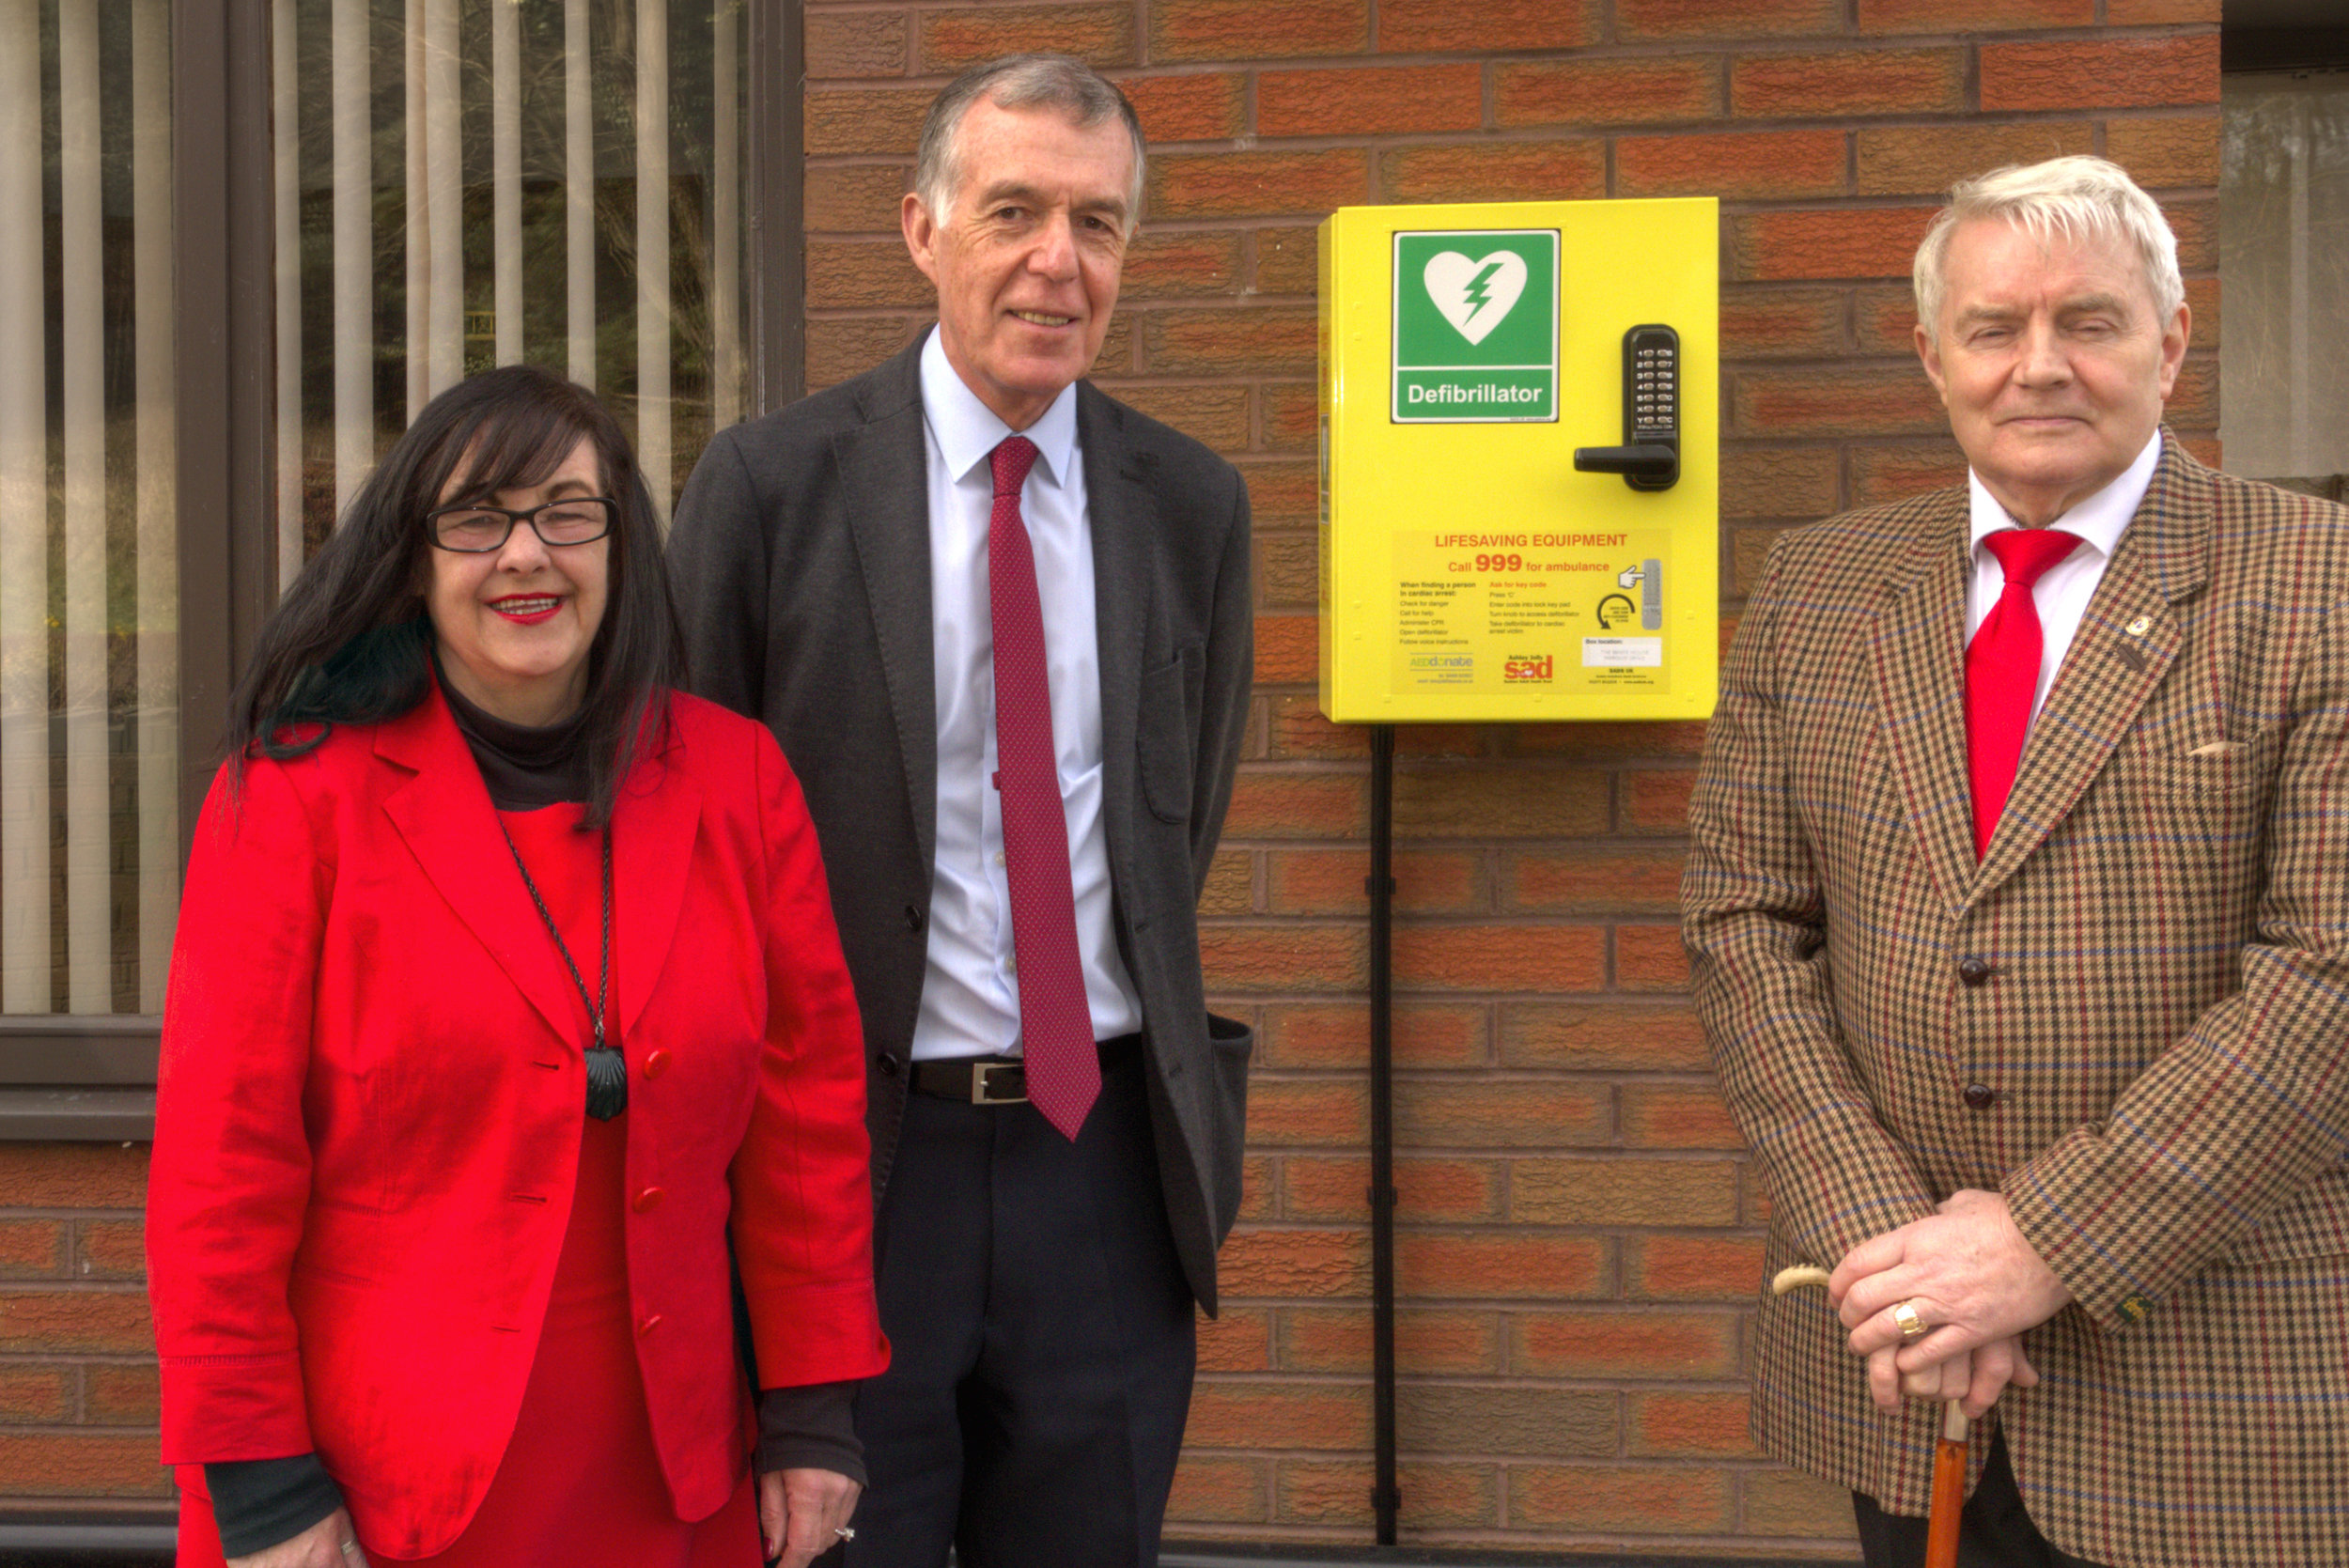 From left to right: County Councillor Mrs Christine Mitchell, County Councillor George Adamson and District and Parish Councillor Alan Pearson